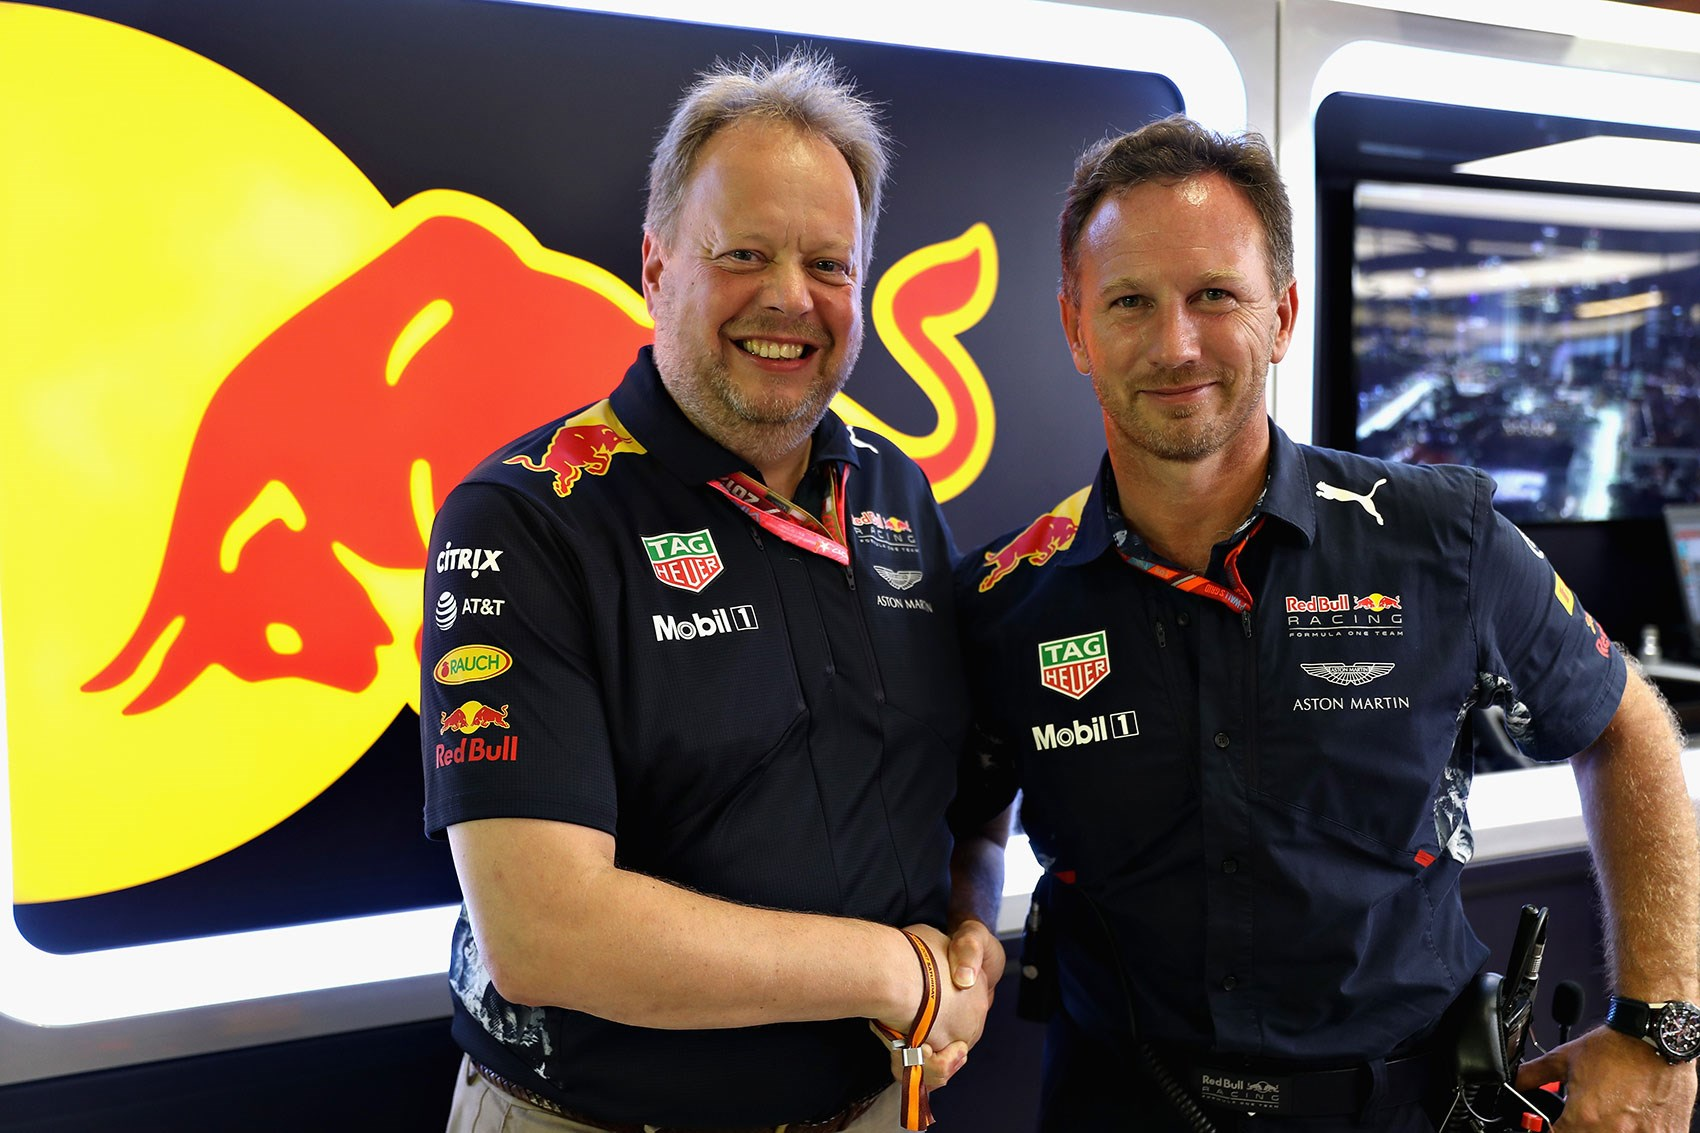 RBR will be Aston Martin Red Bull Racing from 2018